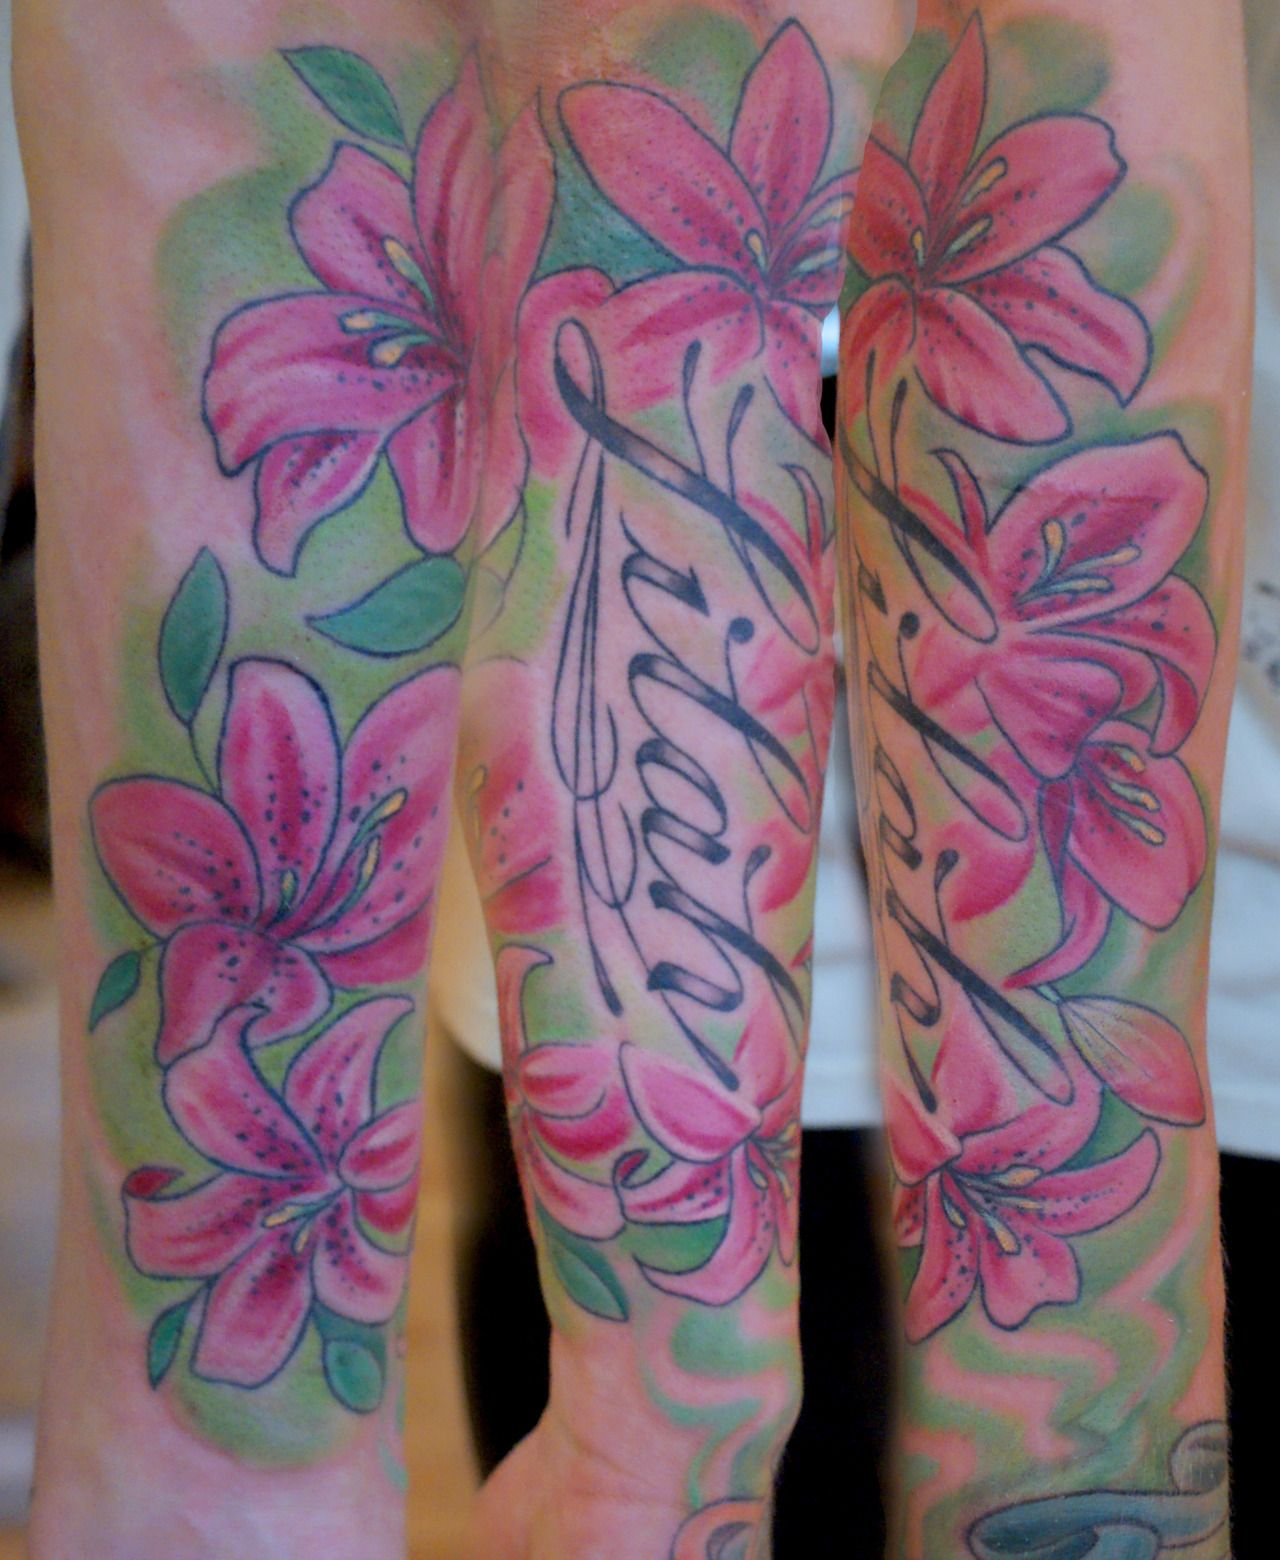 27 astounding lily flower tattoos creativefan tattoos 27 astounding lily flower tattoos creativefan izmirmasajfo Gallery